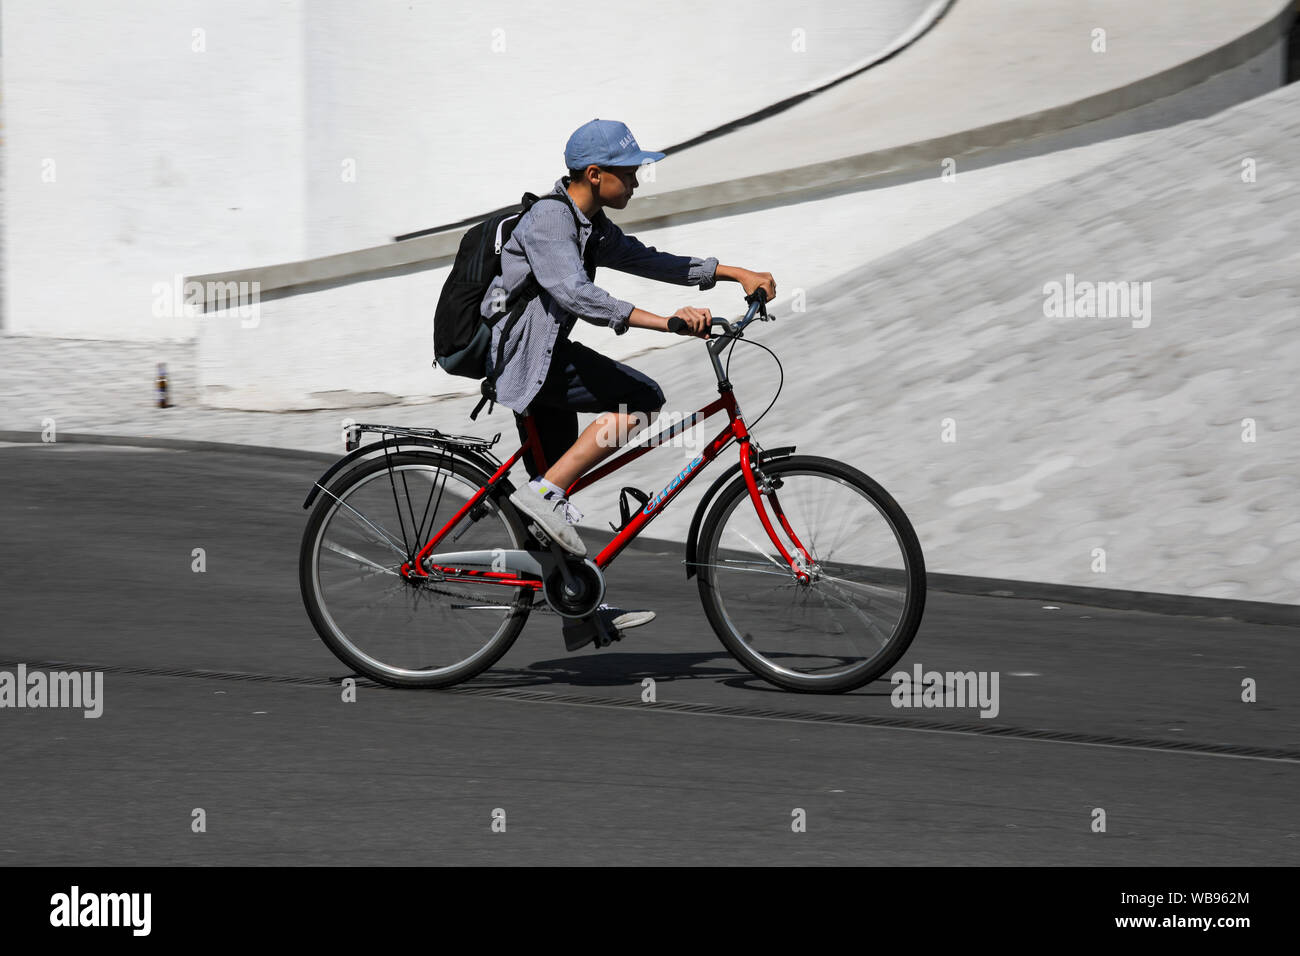 boy-with-a-red-bicycle-WB962M.jpg